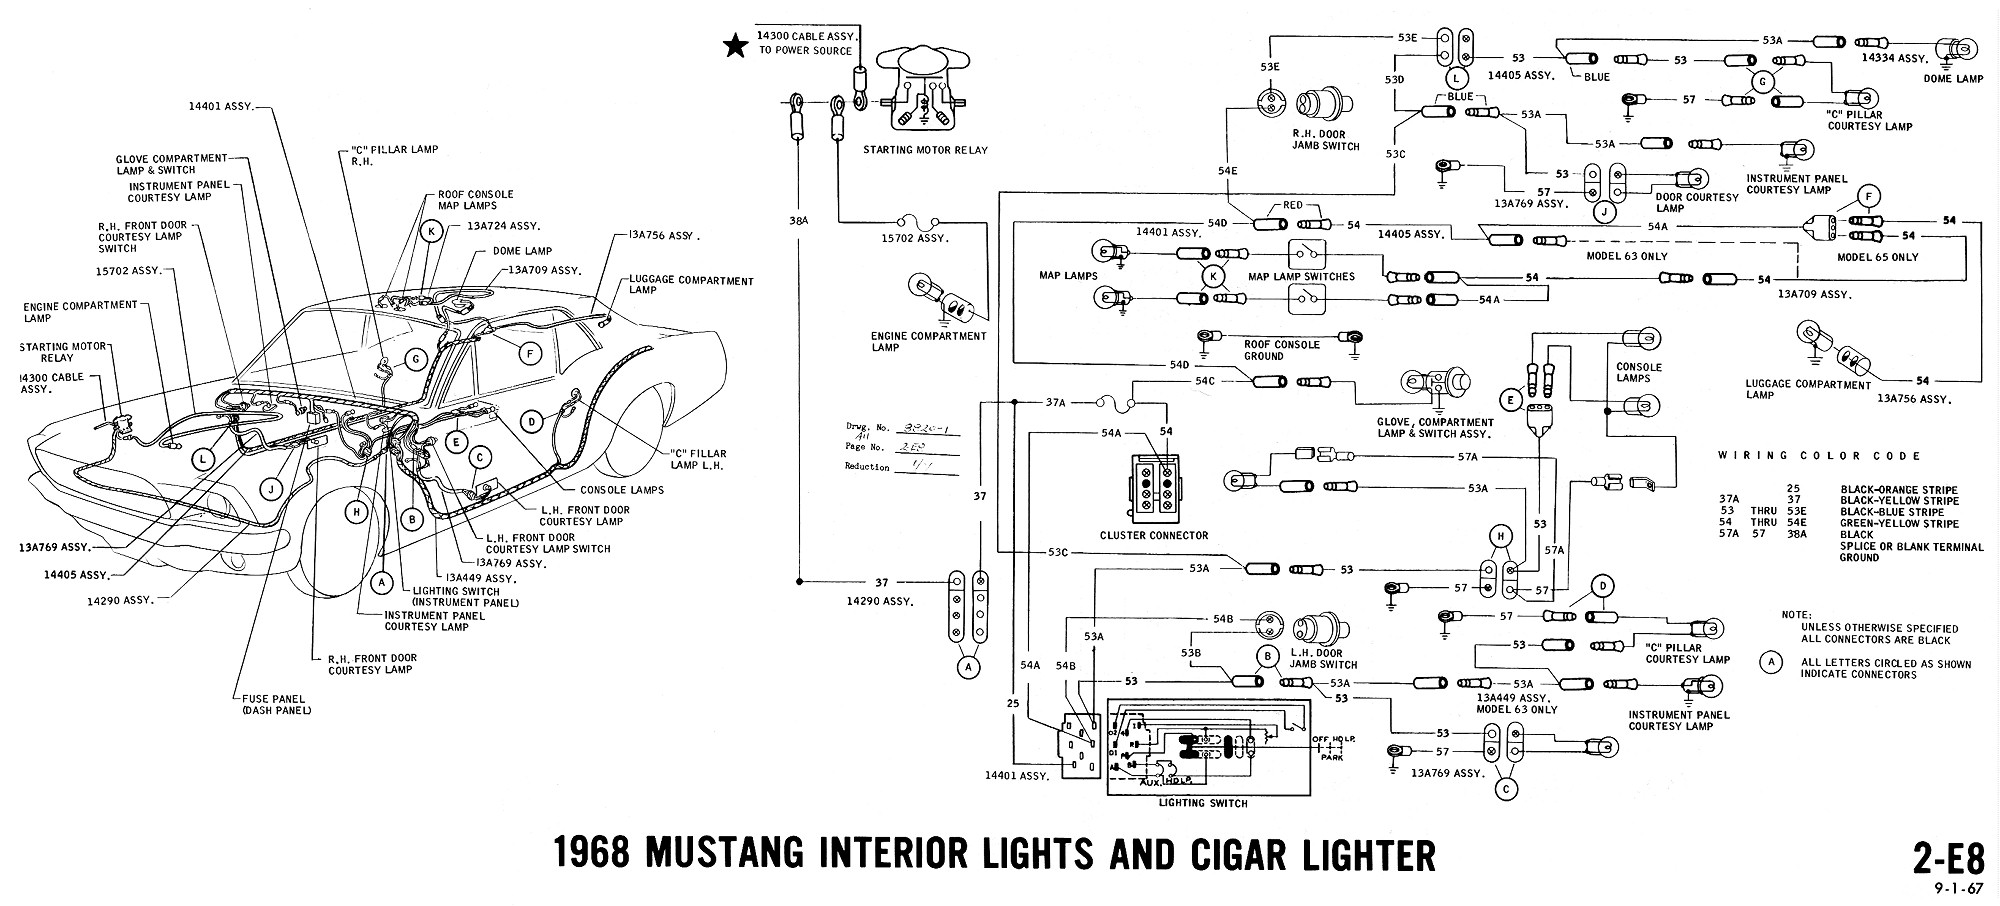 hight resolution of 1969 mustang distributor wiring diagram wiring diagram paper 1969 mustang wiring diagram 1969 mustang wiring diagram